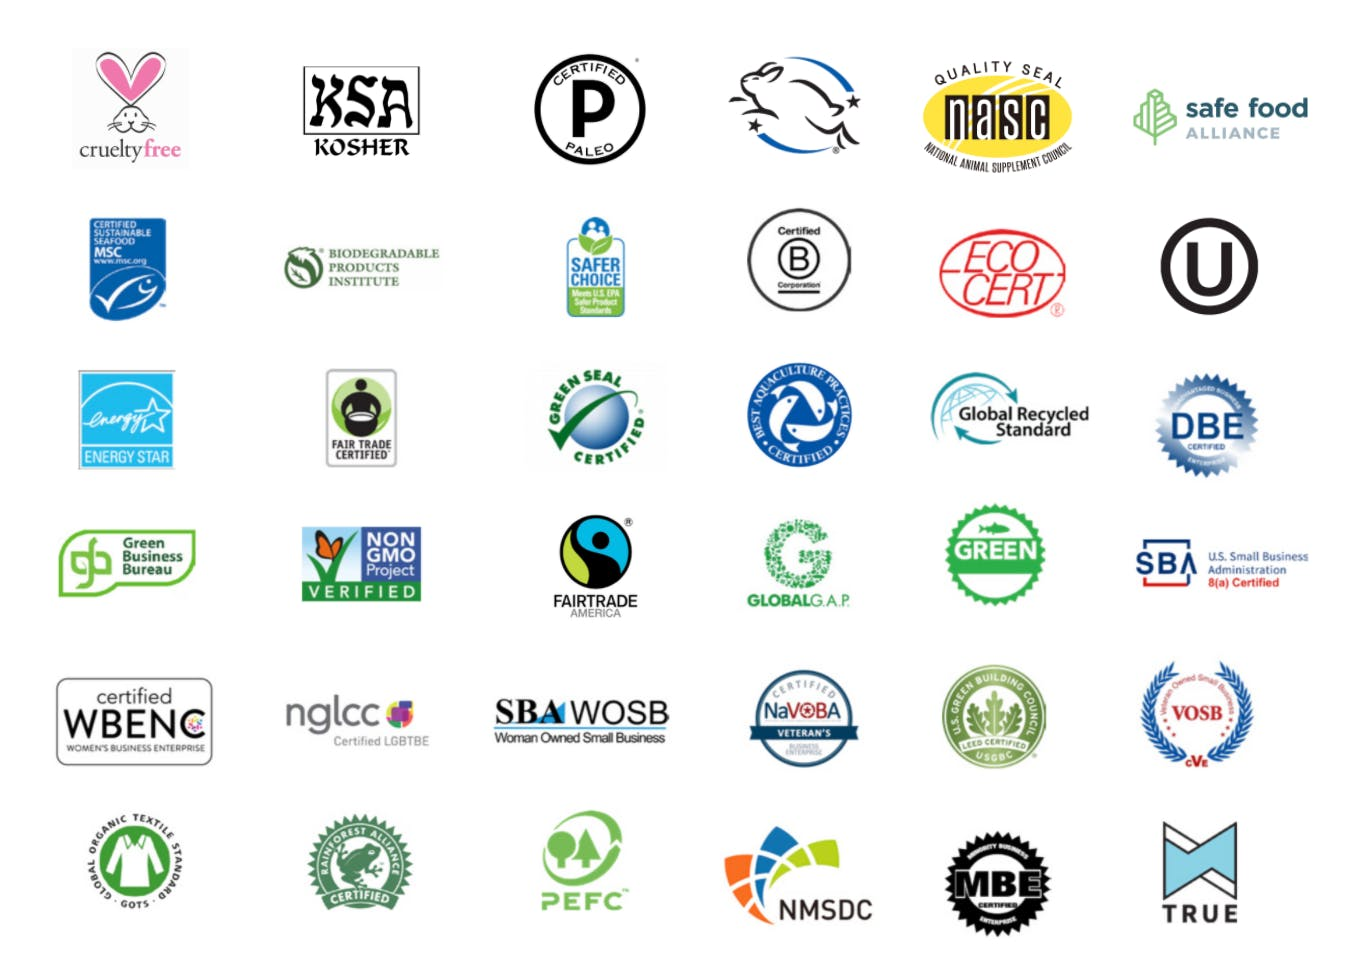 Brand and Product Certification logos